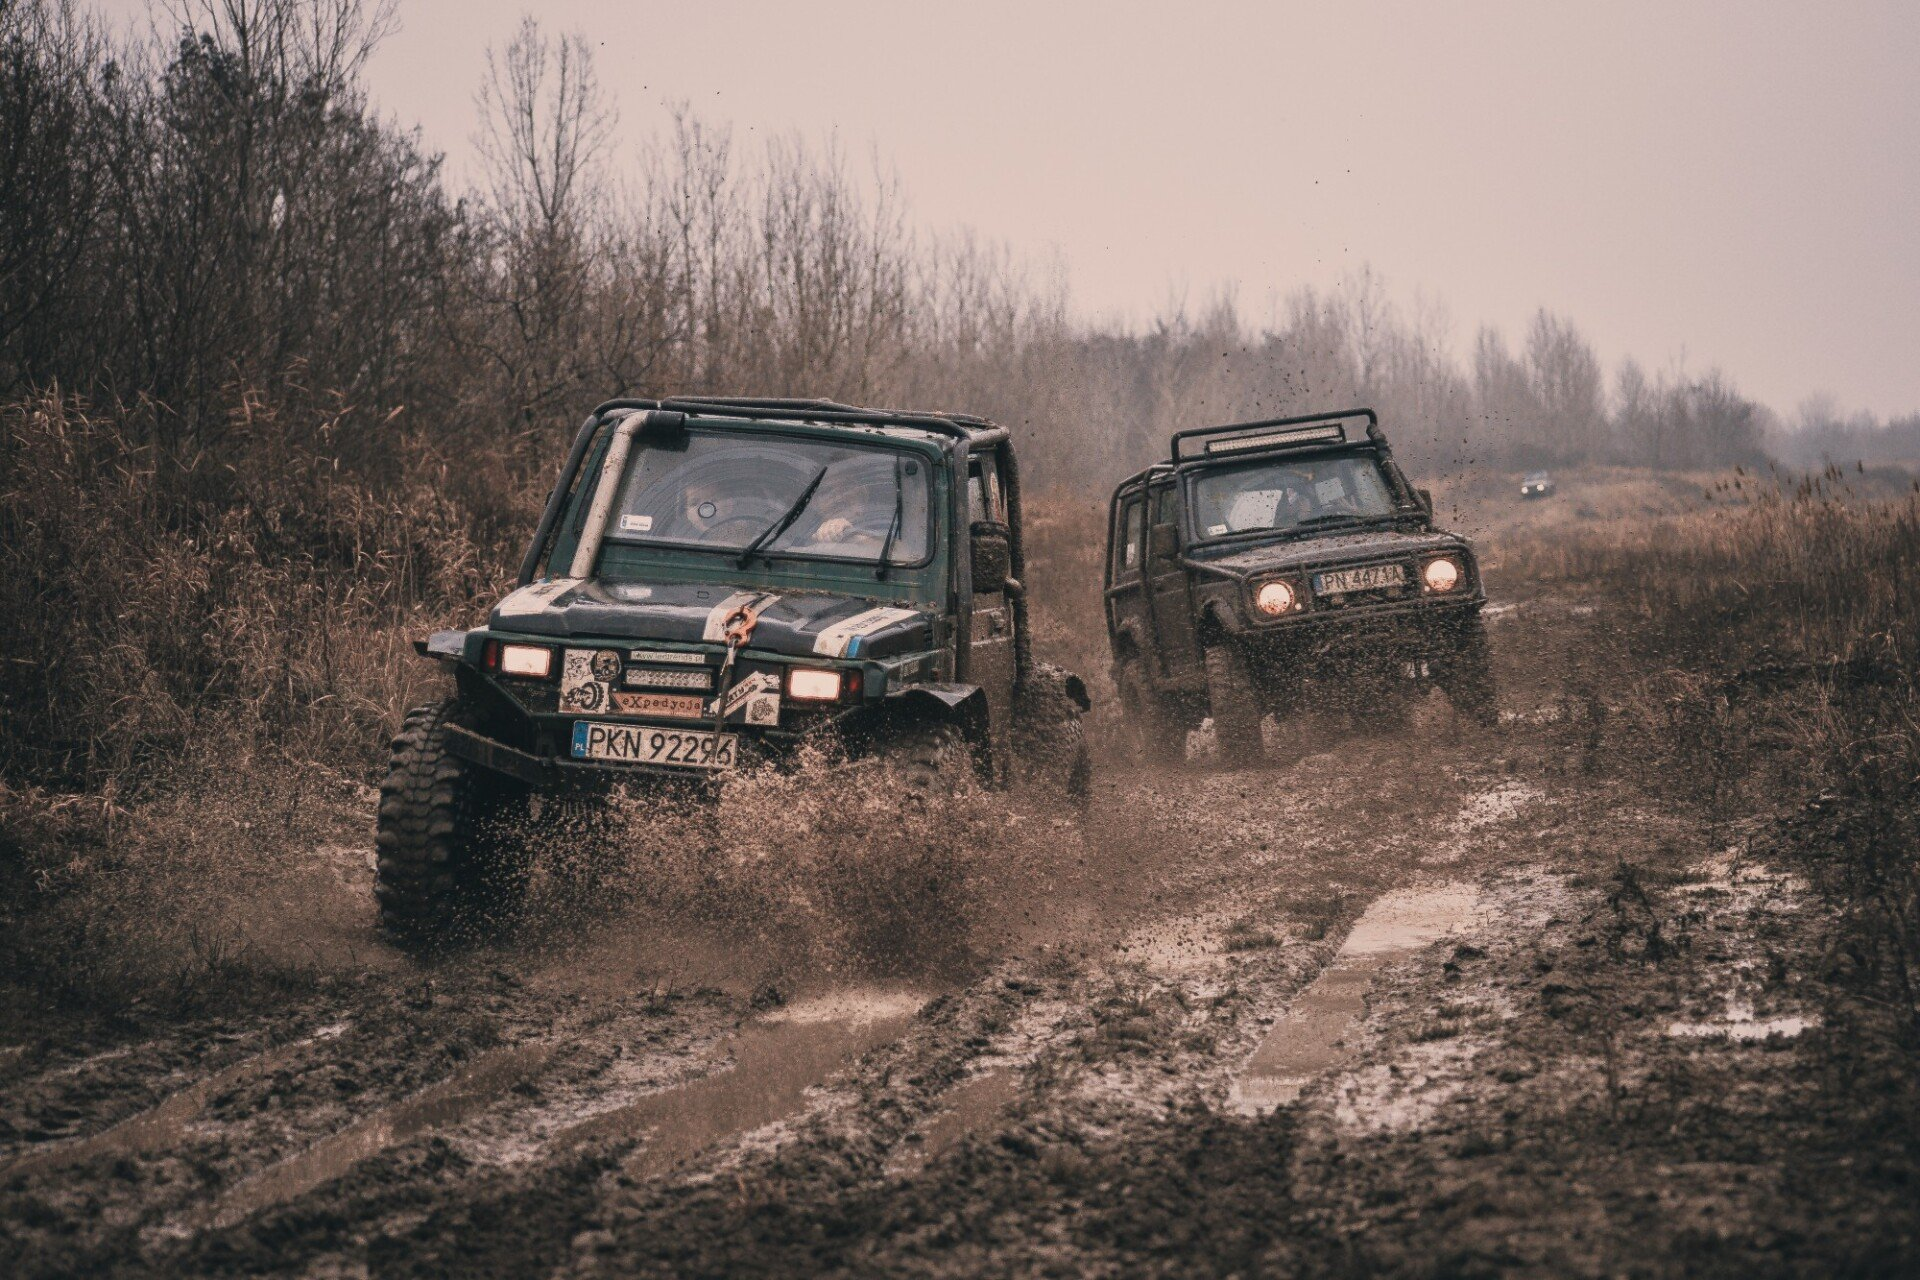 7 Things You Need to Have for Your Next Off-Roading Trip